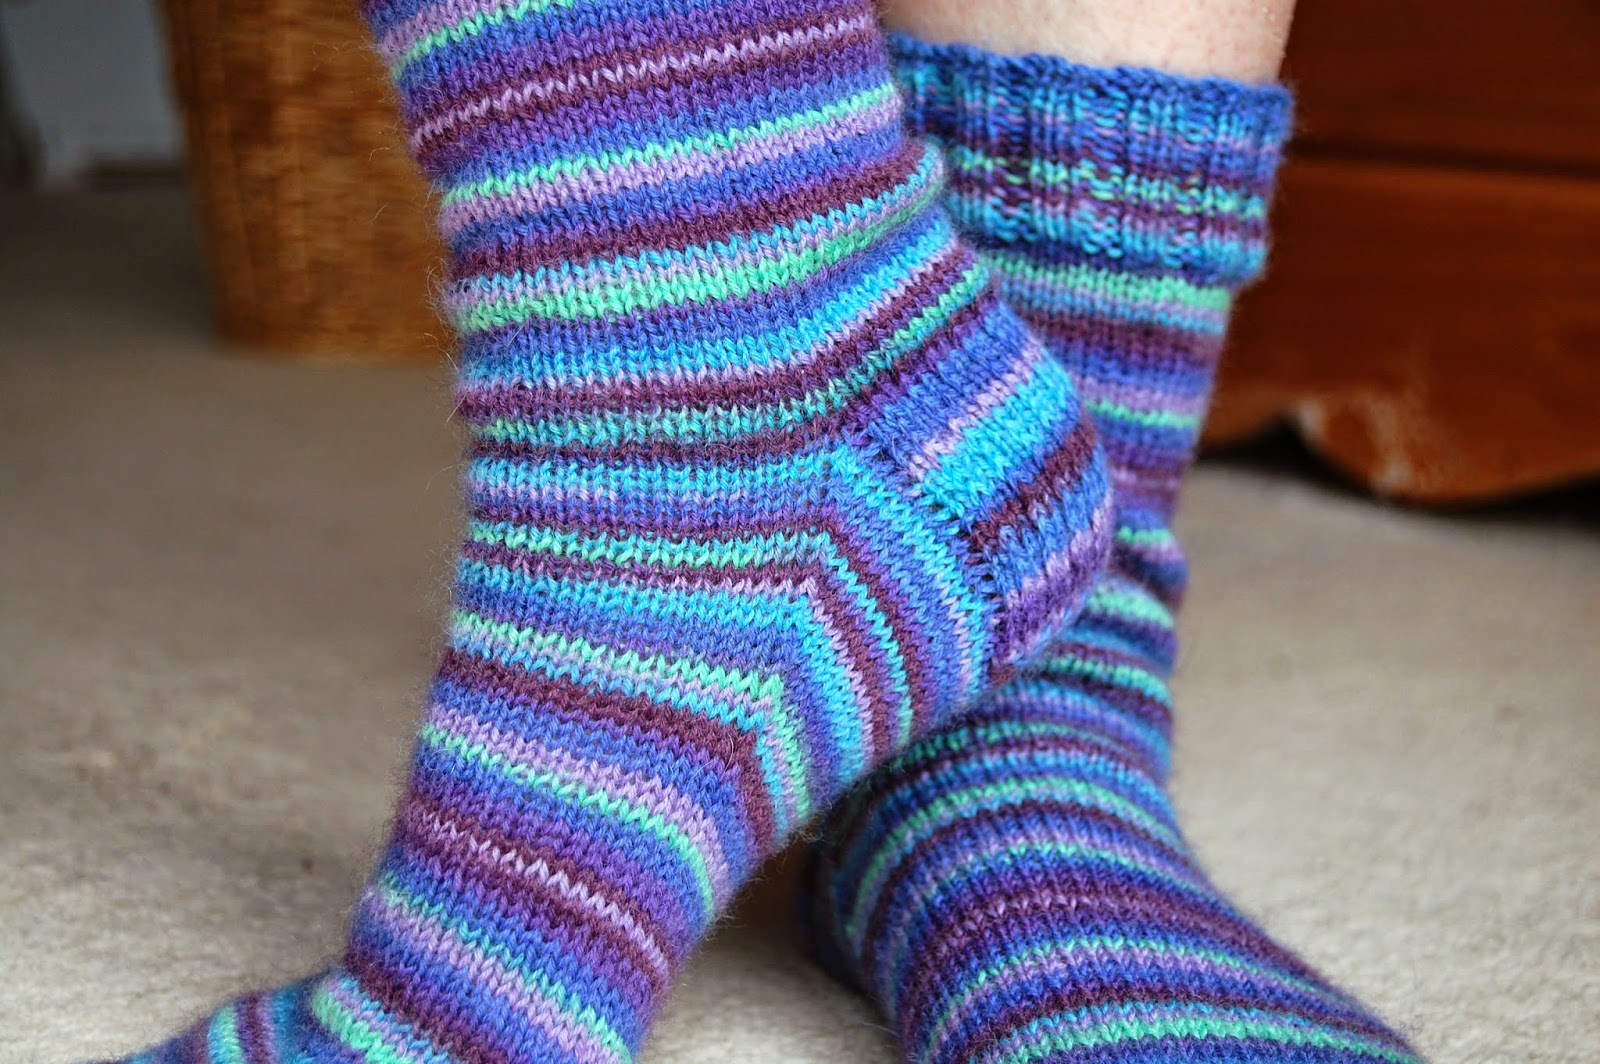 Knitting Patterns For Men s Socks On 4 Needles : Winwick Mum: Basic 4ply sock pattern and tutorial - easy beginner sock knitting!